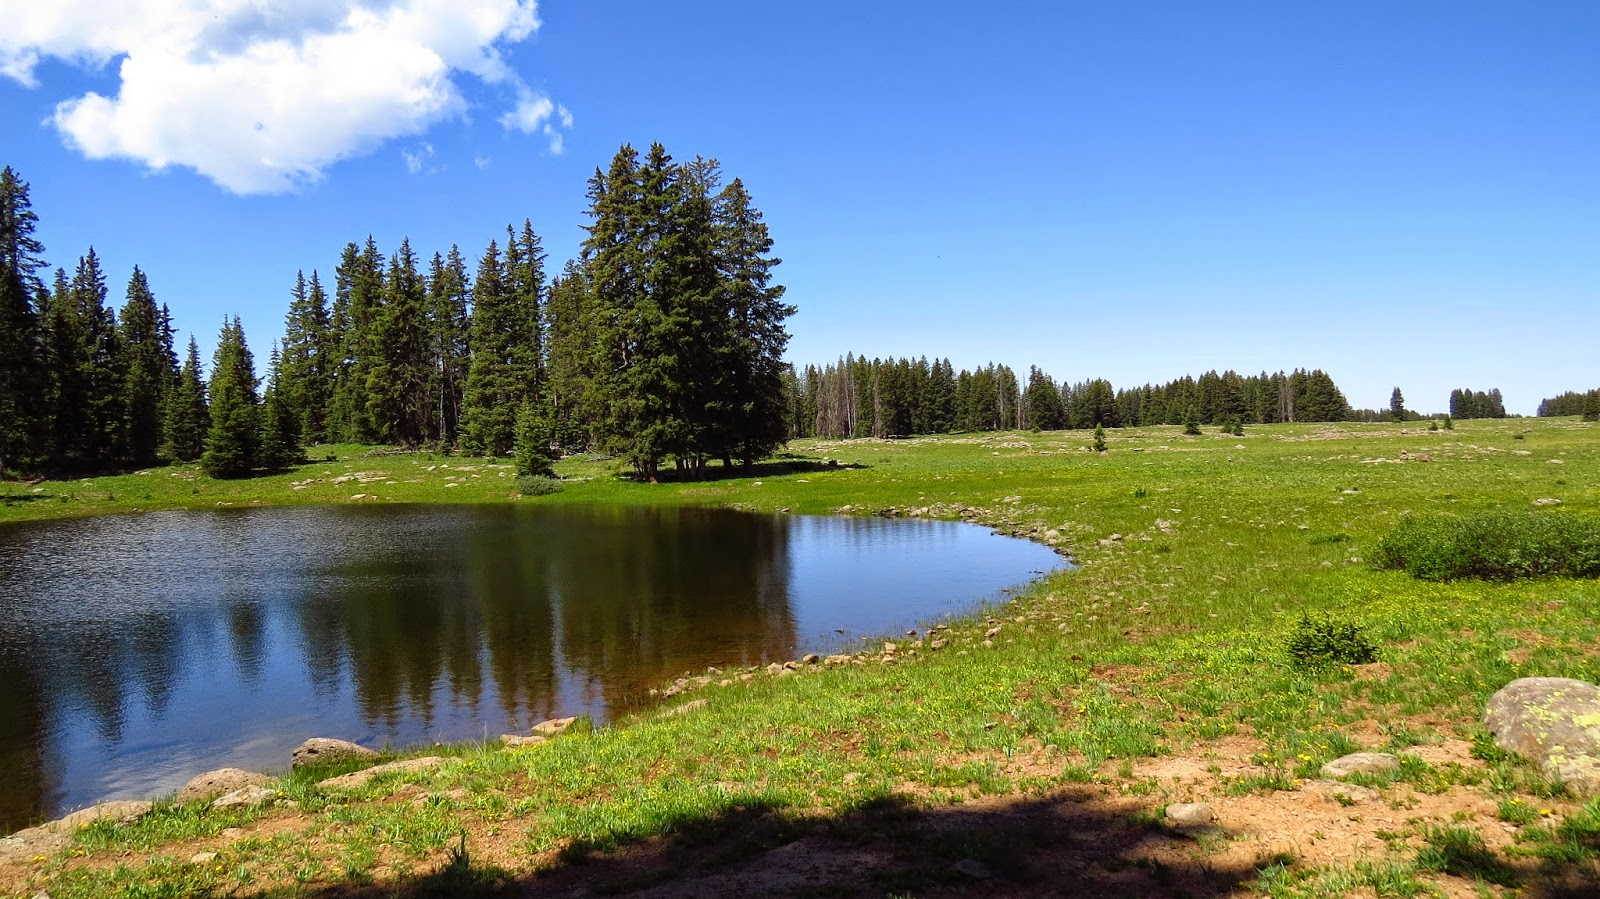 One of the many hundreds of lakes on Grand Mesa, Colorado